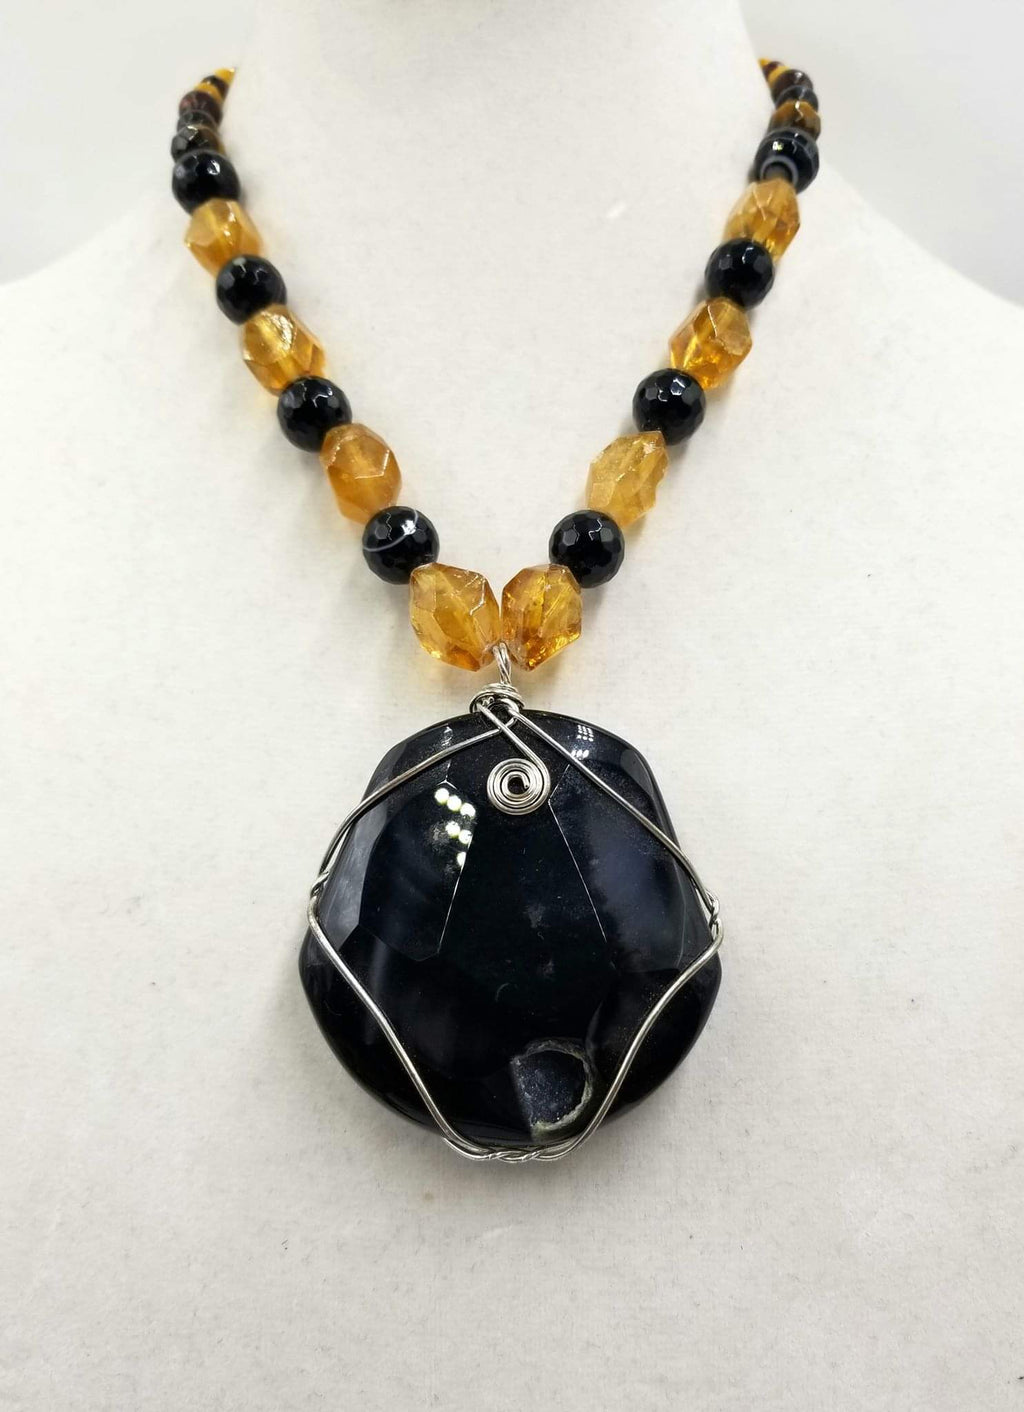 Bold calcite, onyx, & tiger's eye pendant on sterling silver necklace.